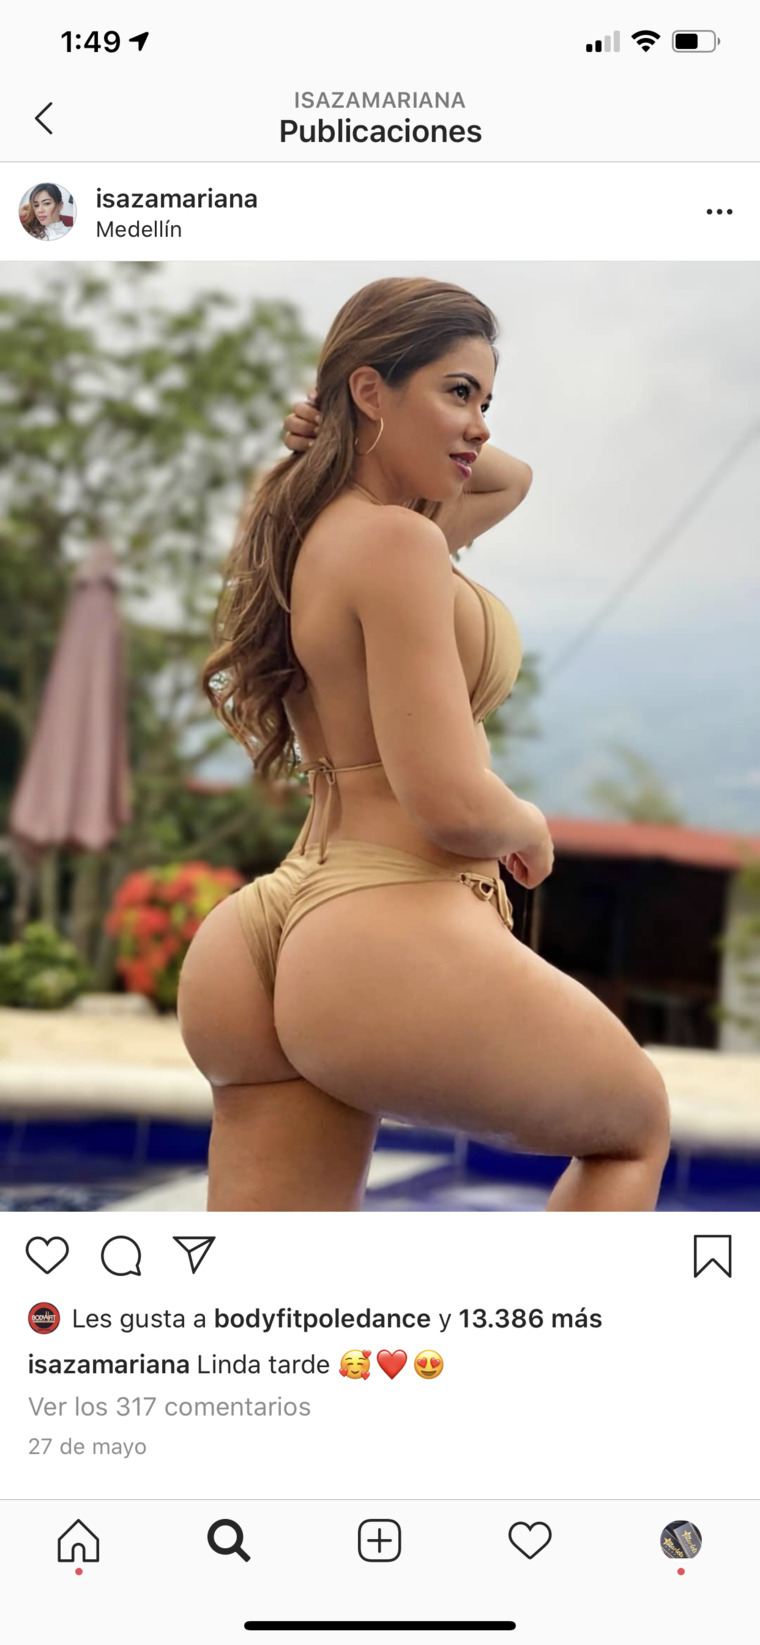 Mariana isaza OnlyFans Leaked Photos and Videos